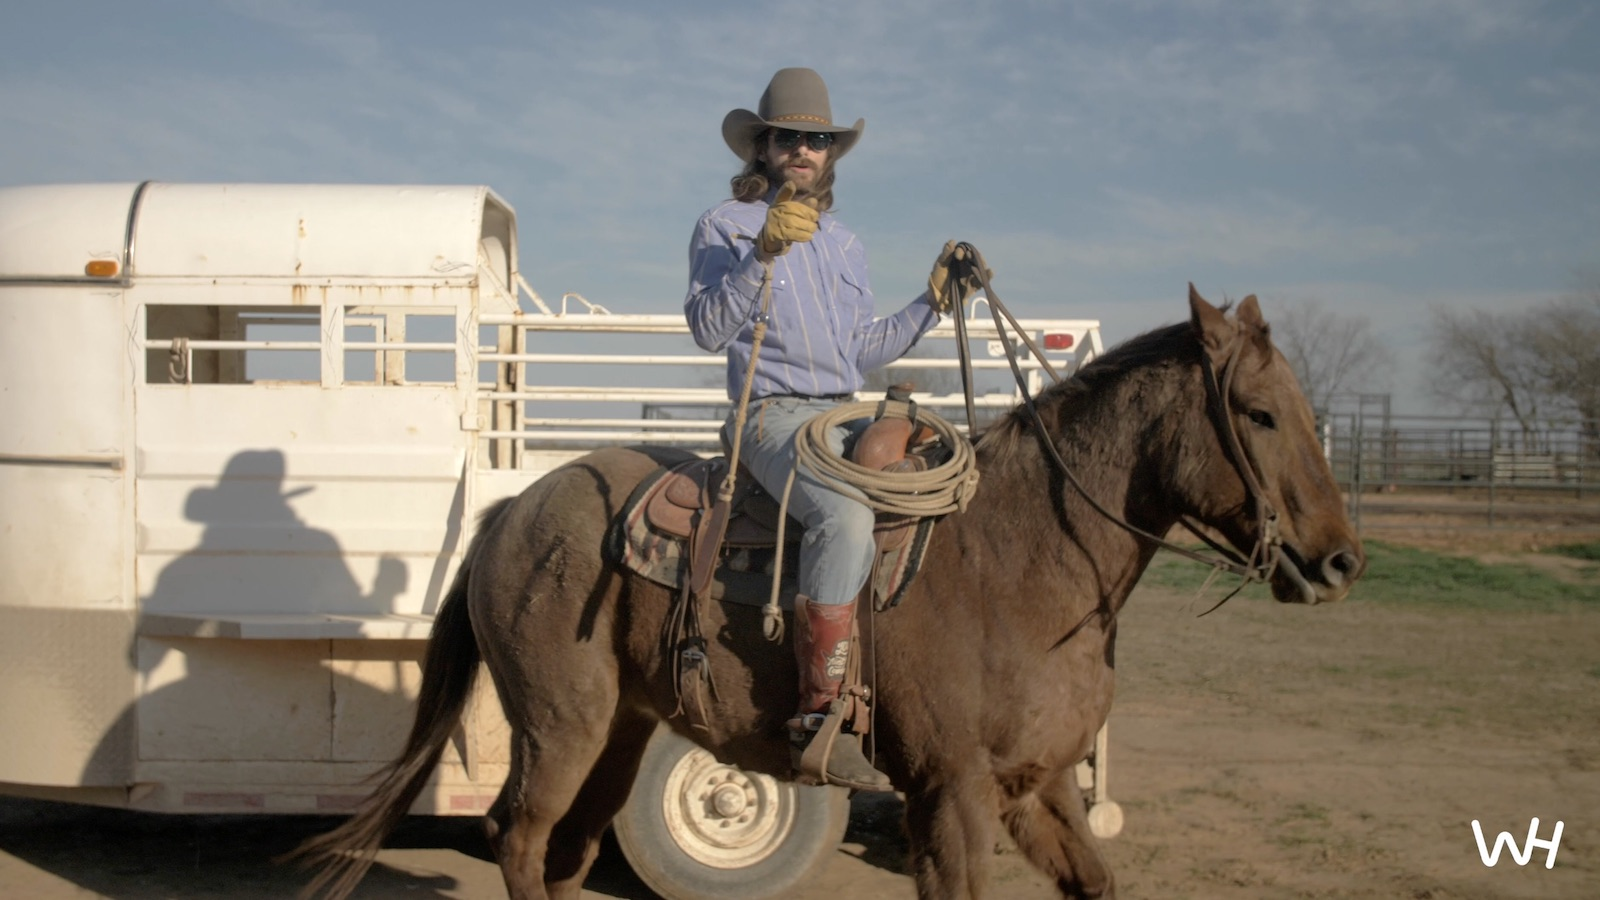 Dale Brisby showing how to load a horse into a trailer